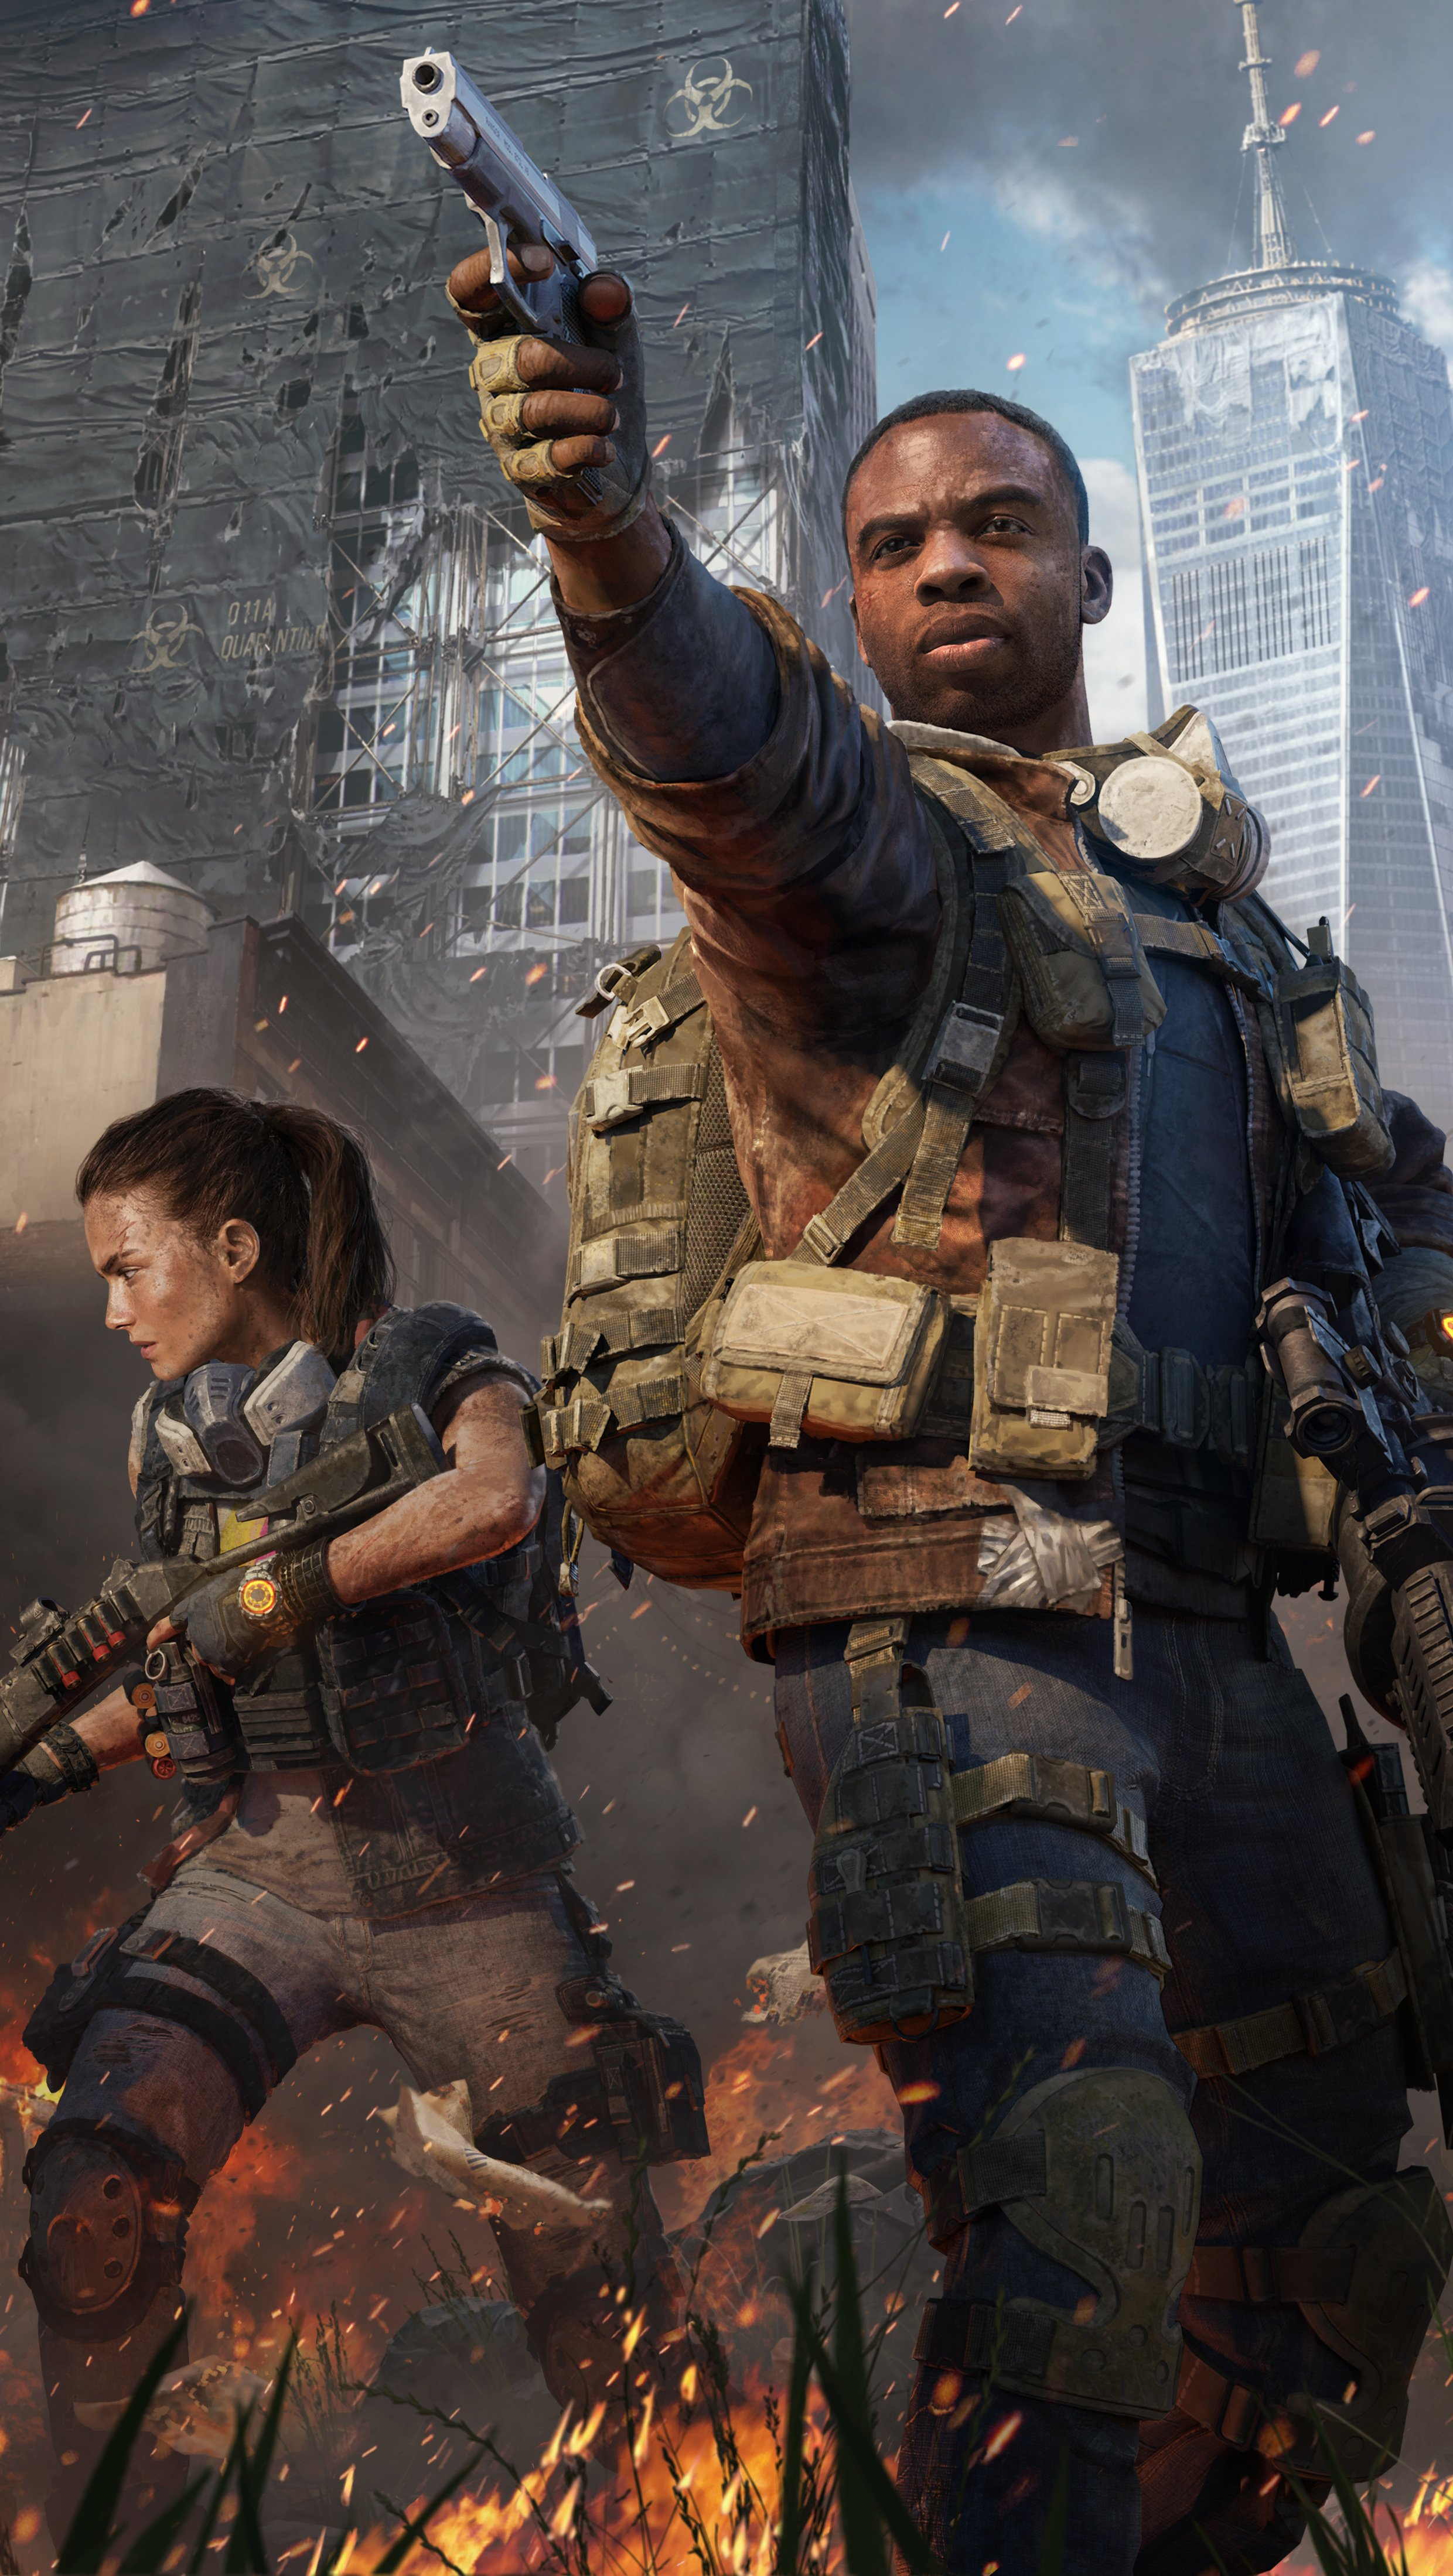 Fondos de pantalla Tom Clancy's The Division 2 Warlords of New York Vertical